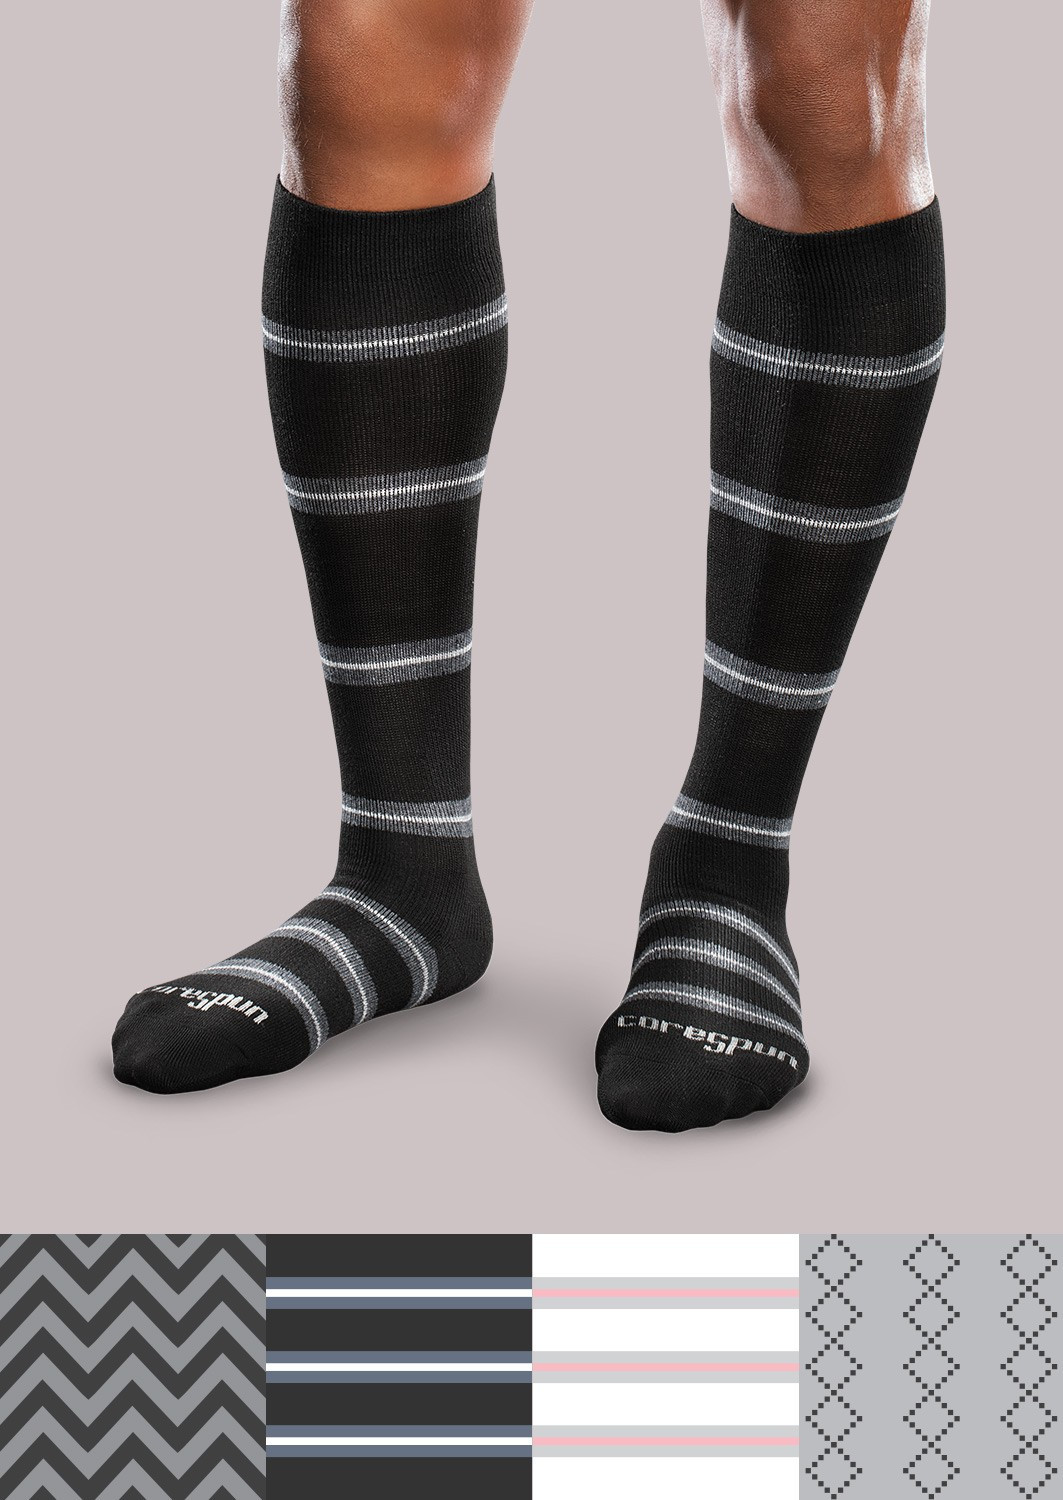 Patterned socks Luxury Moderate Support socks Patterned Core Spun Of Superb 48 Images Patterned socks